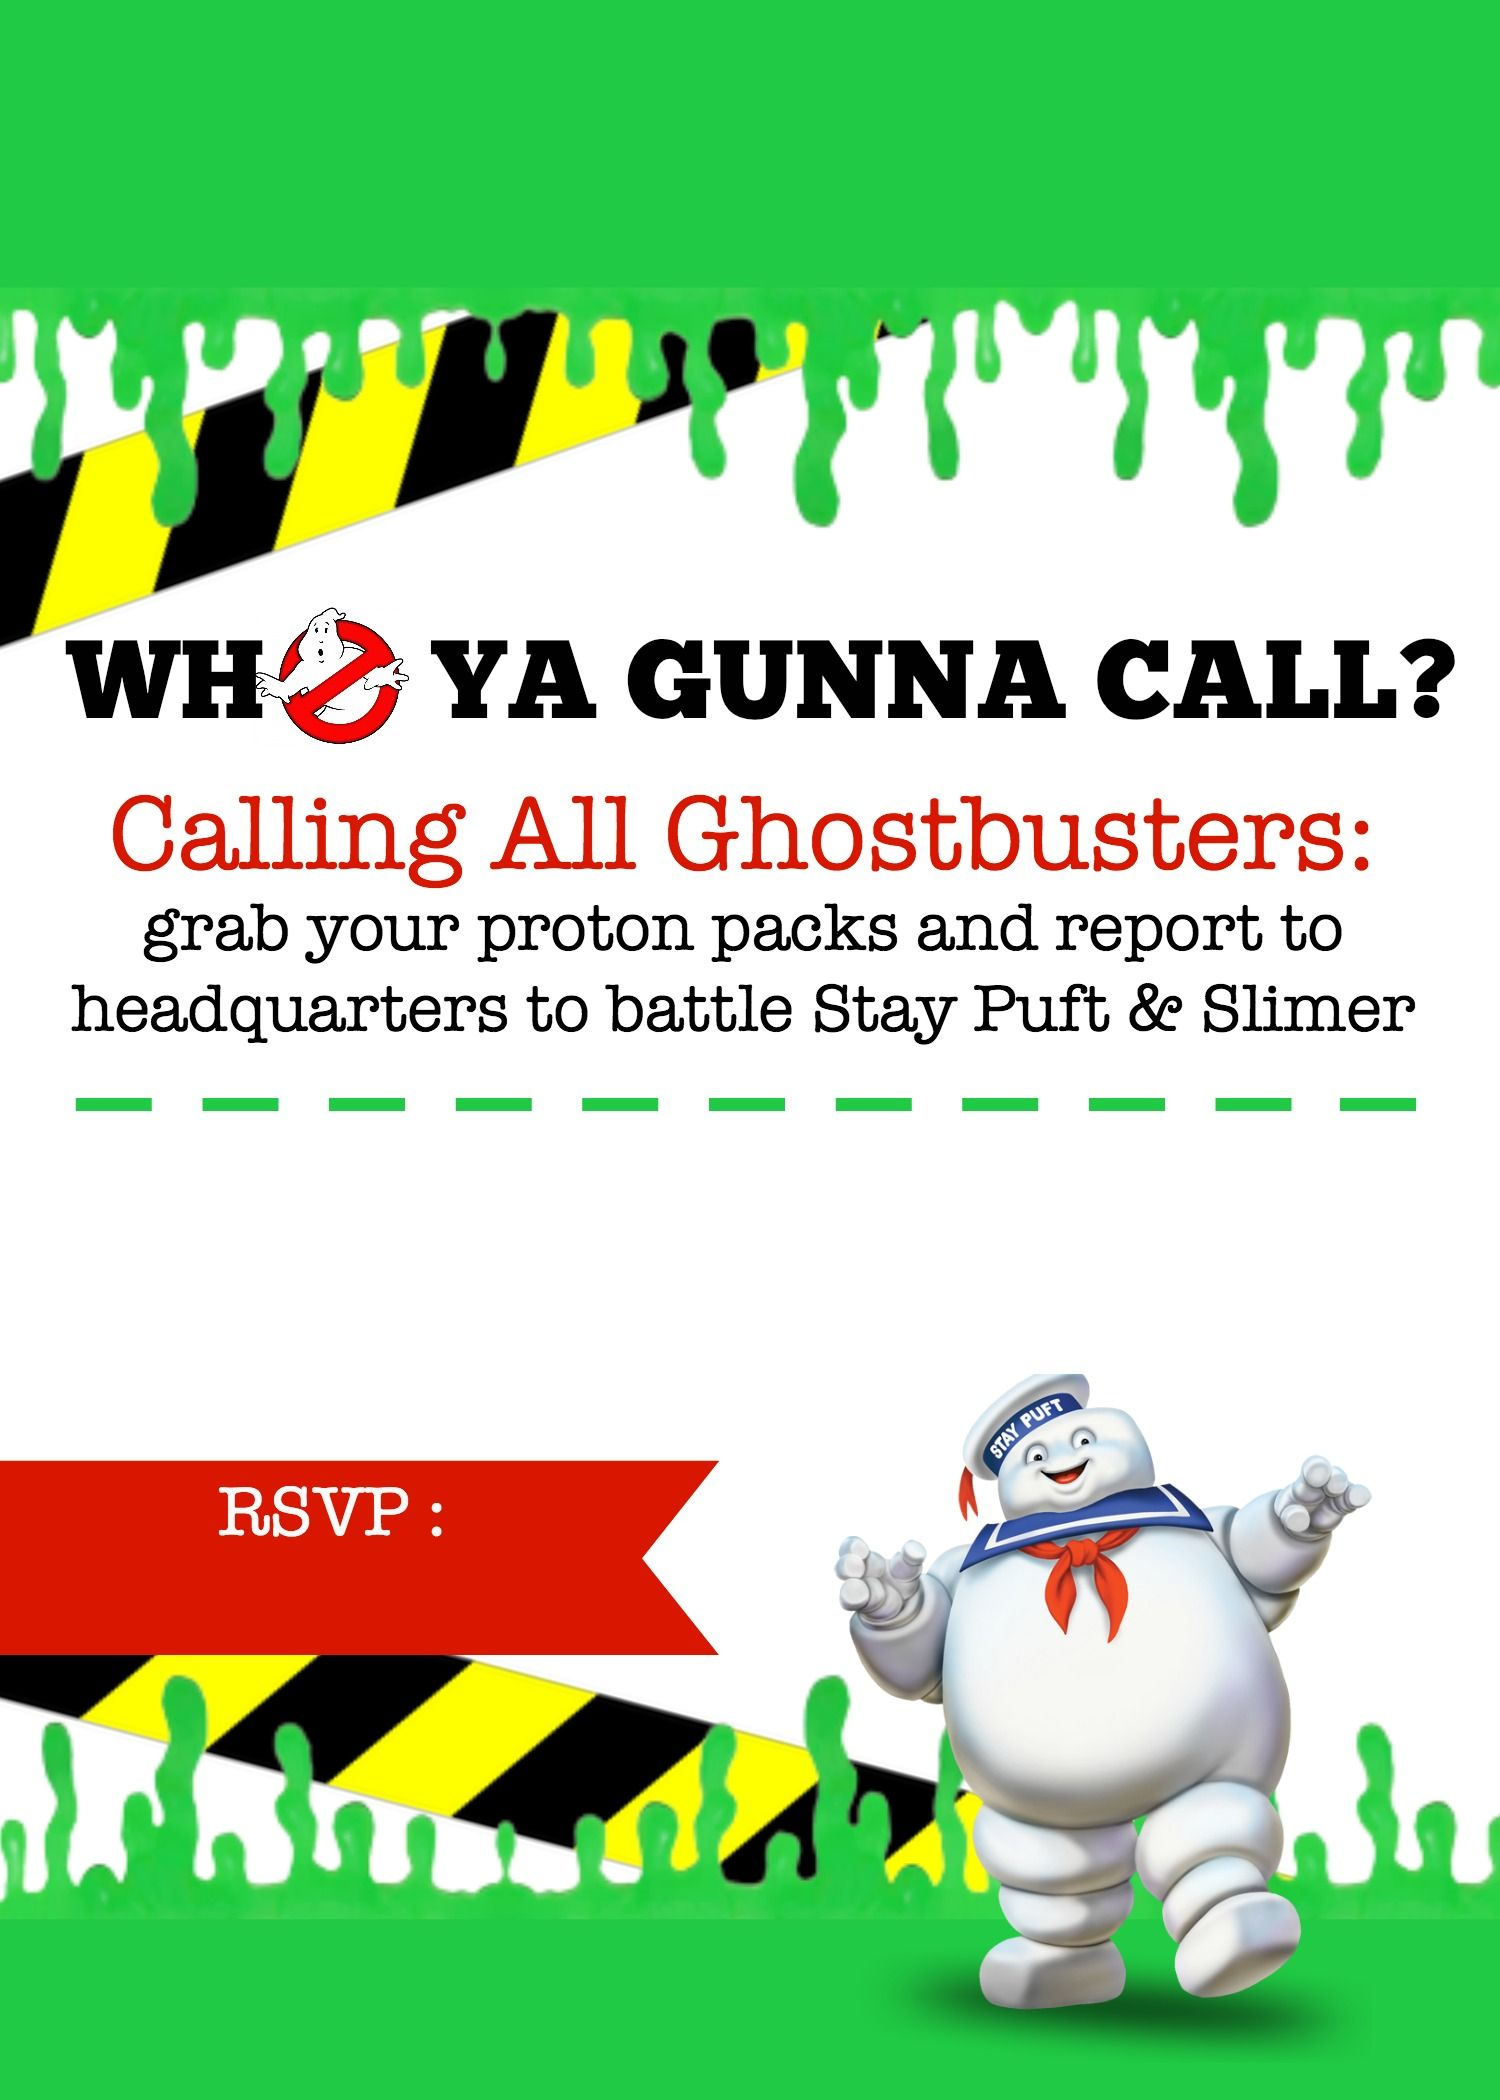 Displaying Free Ghostbusters Invite Jpg Ghostbusters Birthday Party Ghostbusters Party Ghost Busters Birthday Party